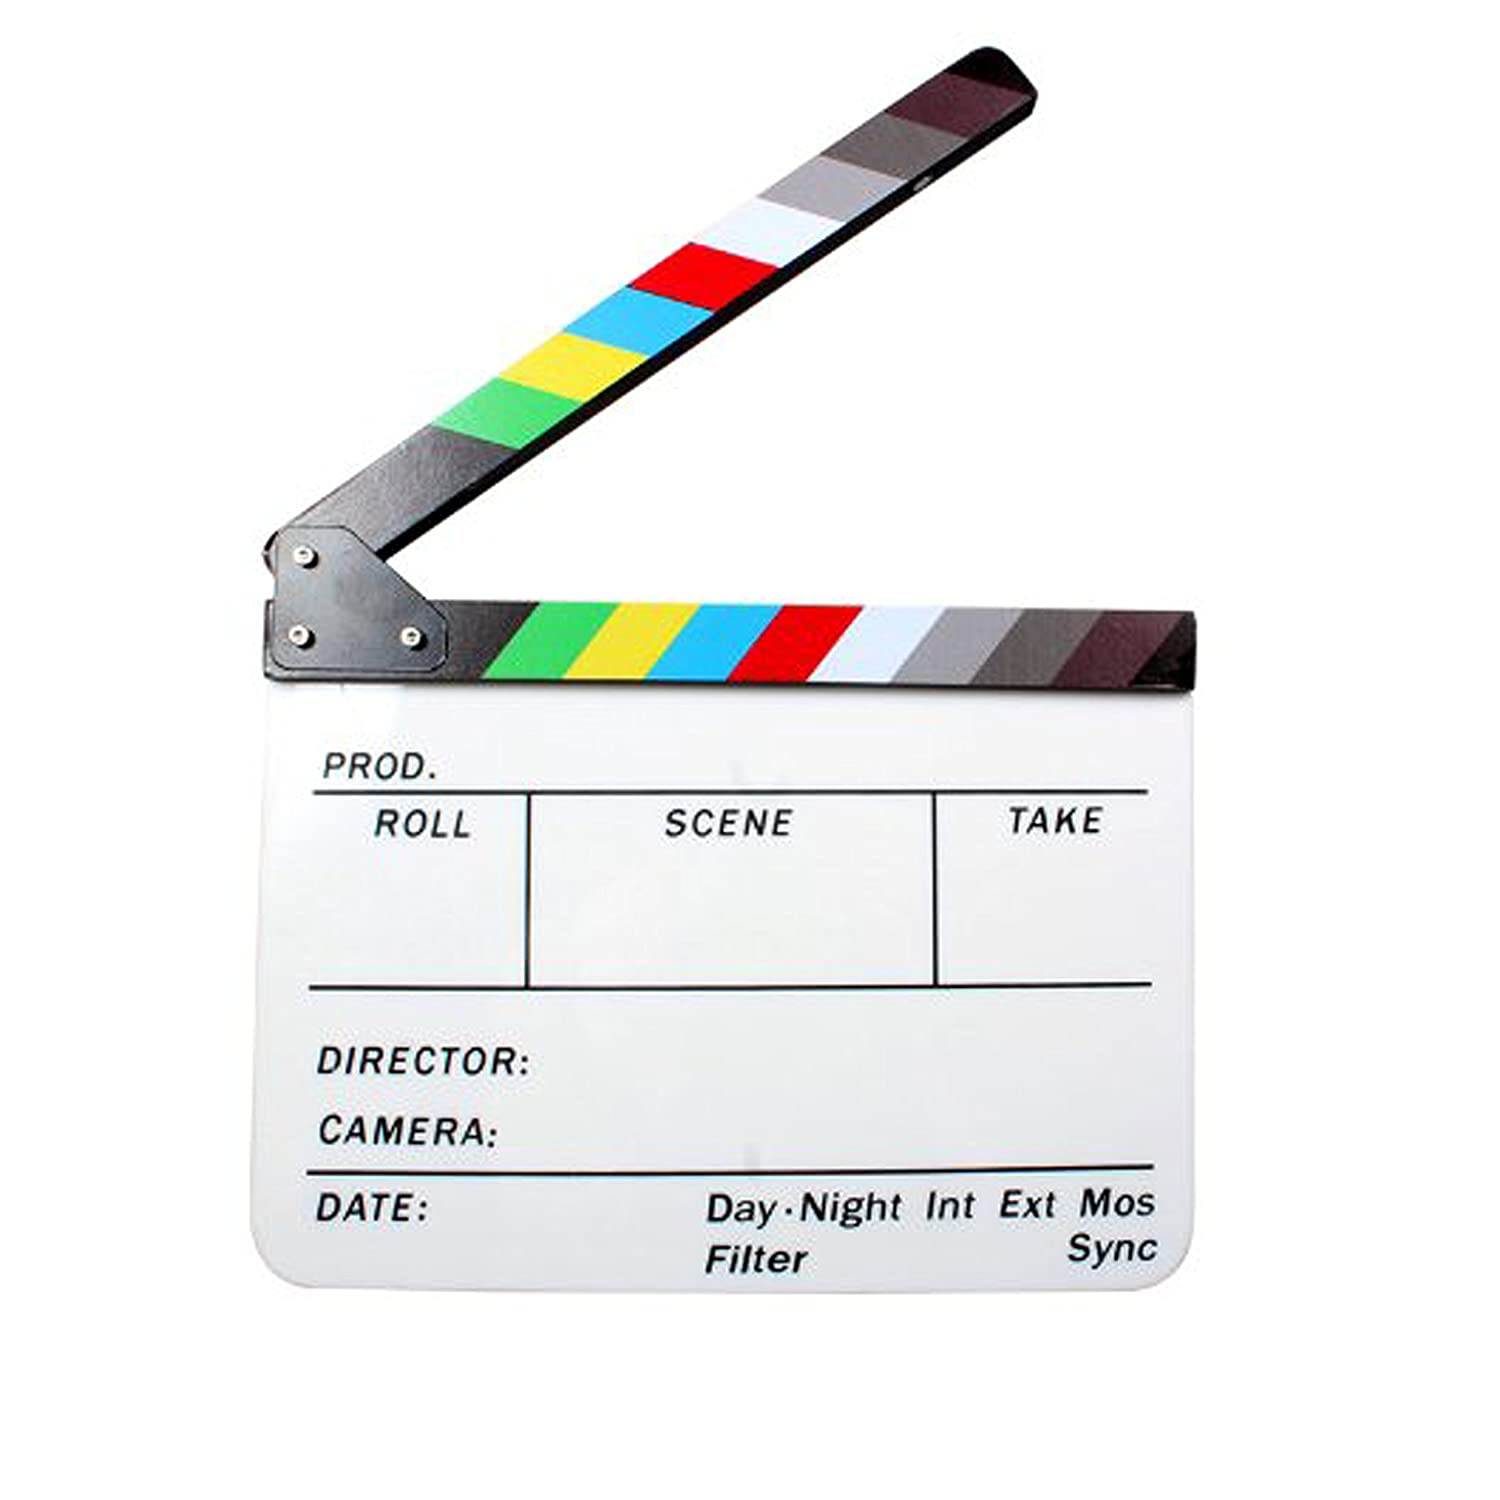 Acrylic Clapboard Dry Erase Director Film Movie Clapper Board Slate 9.6 * 11.7 with Color Sticks Andoer K5A1423275317480D1